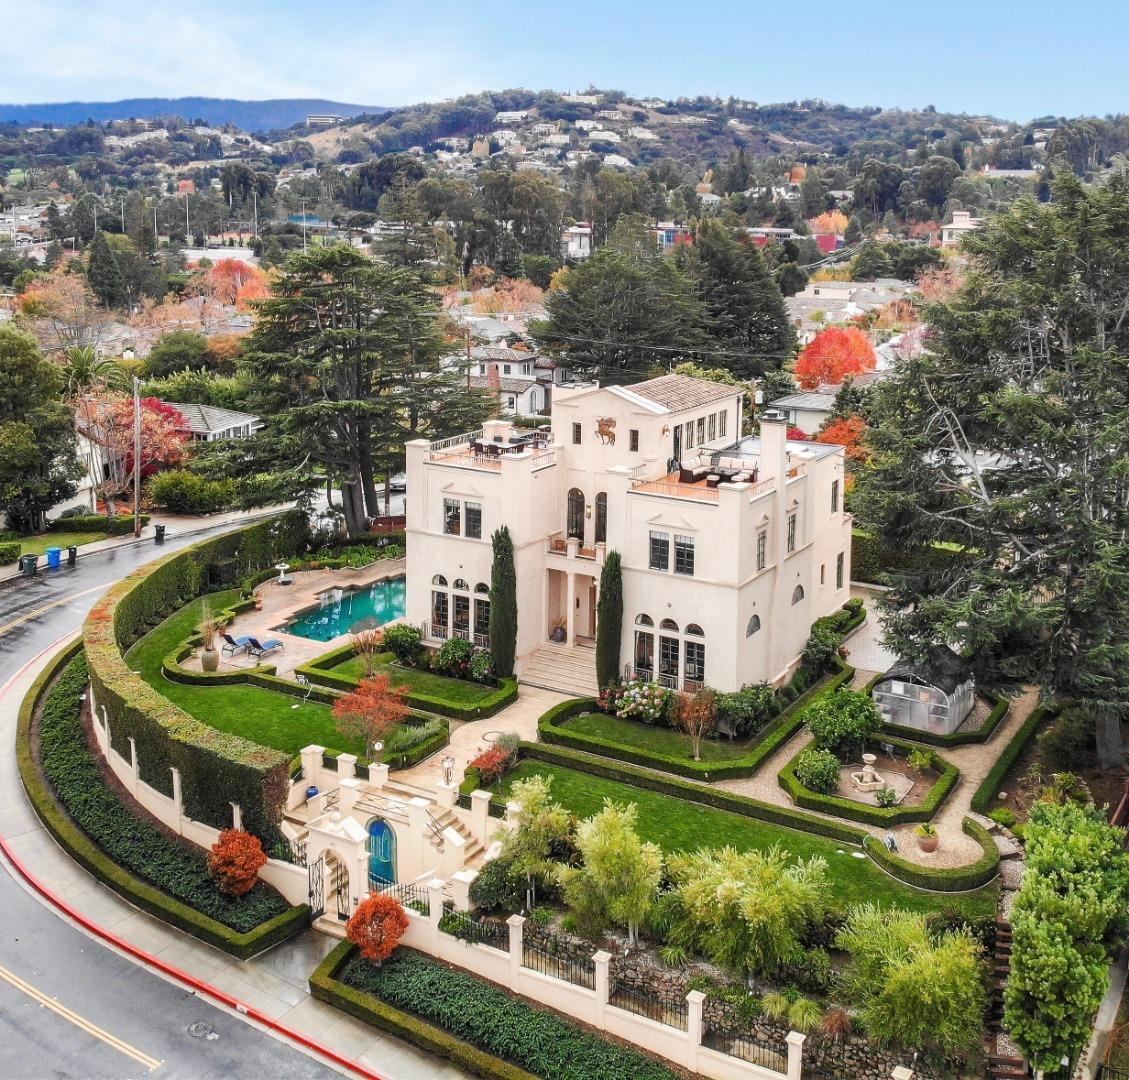 This one of a kind property, designed by the renowned Italian architect Peter D. Canali is situated on a 17,500 sq/ft knoll in San Mateo's coveted Baywood neighborhood. The 4,800+ sq/ft of living space consists of 12 rooms including 3 suites, a central reception area, an elegant living room, and a banquet-sized dining room. Also included are a chef's kitchen with an eating area, meditation/4th bedroom, executive office and a penthouse entertainment-family room with a full bar and French doors to 2 terraces that offer magical 360-degree views of the Peninsula. All 4 floors, including the full basement, can be accessed by an elevator as well. The surrounding grounds include a gated carriage entrance, heated pool, greenhouse, a private electric gated driveway that leads to a 2-car garage with an Au-pair studio above complete with a kitchen and full bath. This professionally landscaped home is within walking distance to downtown San Mateo and minutes from San Francisco and Silicon Valley.